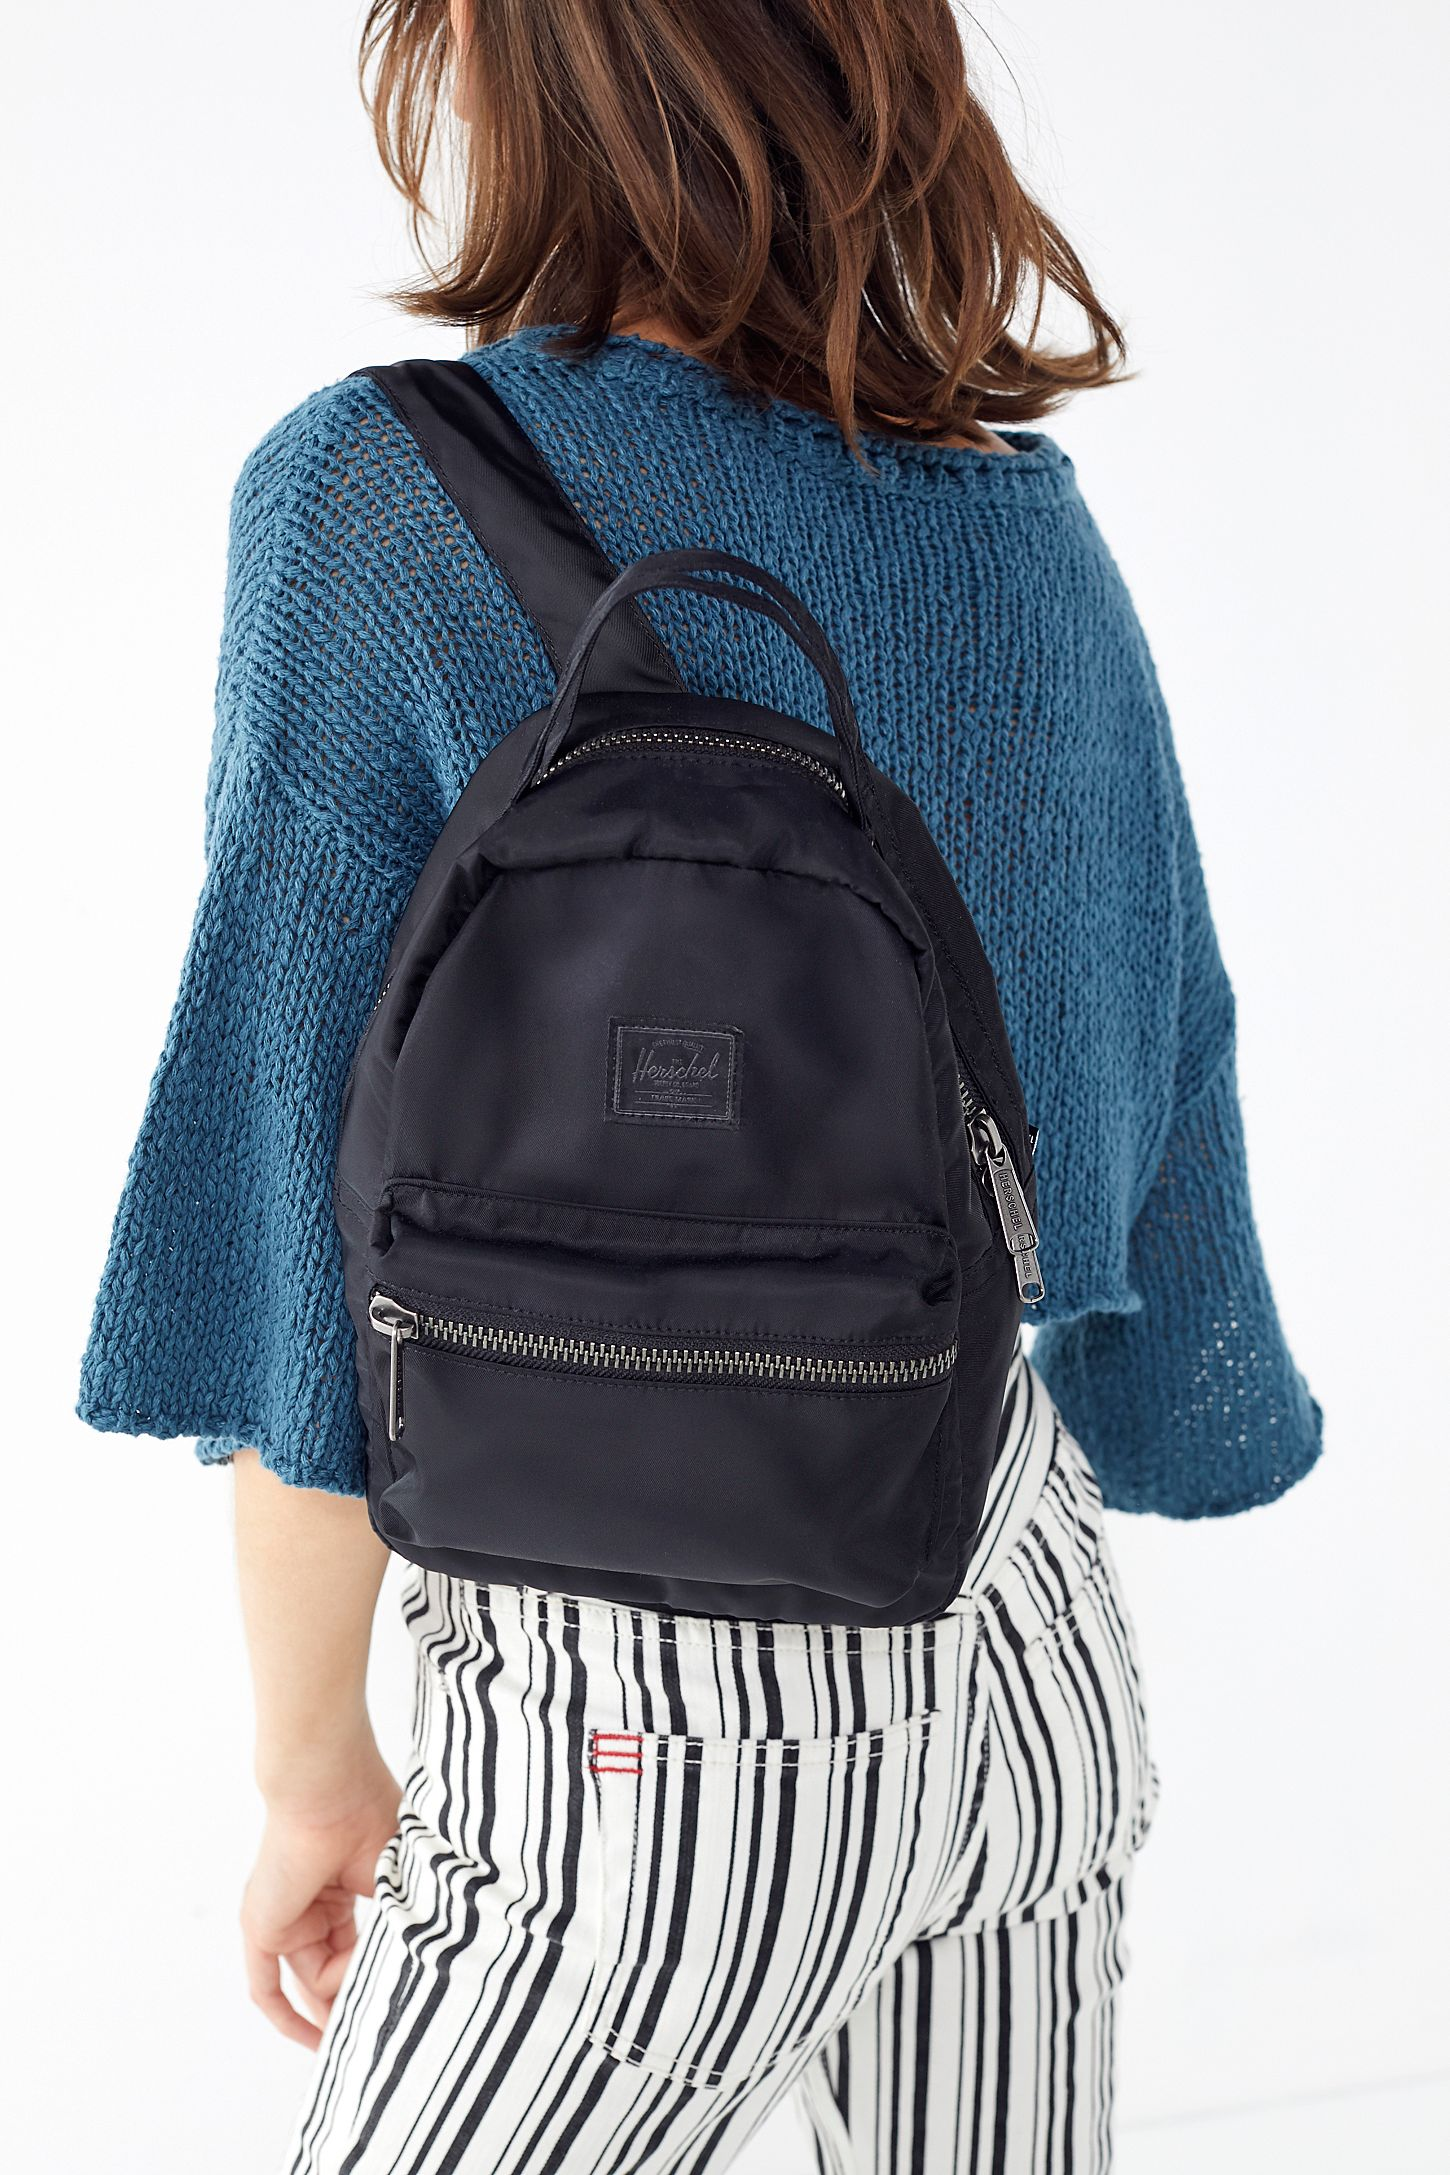 11a3082b16 Herschel Supply Co. Satin Nova Mini Backpack